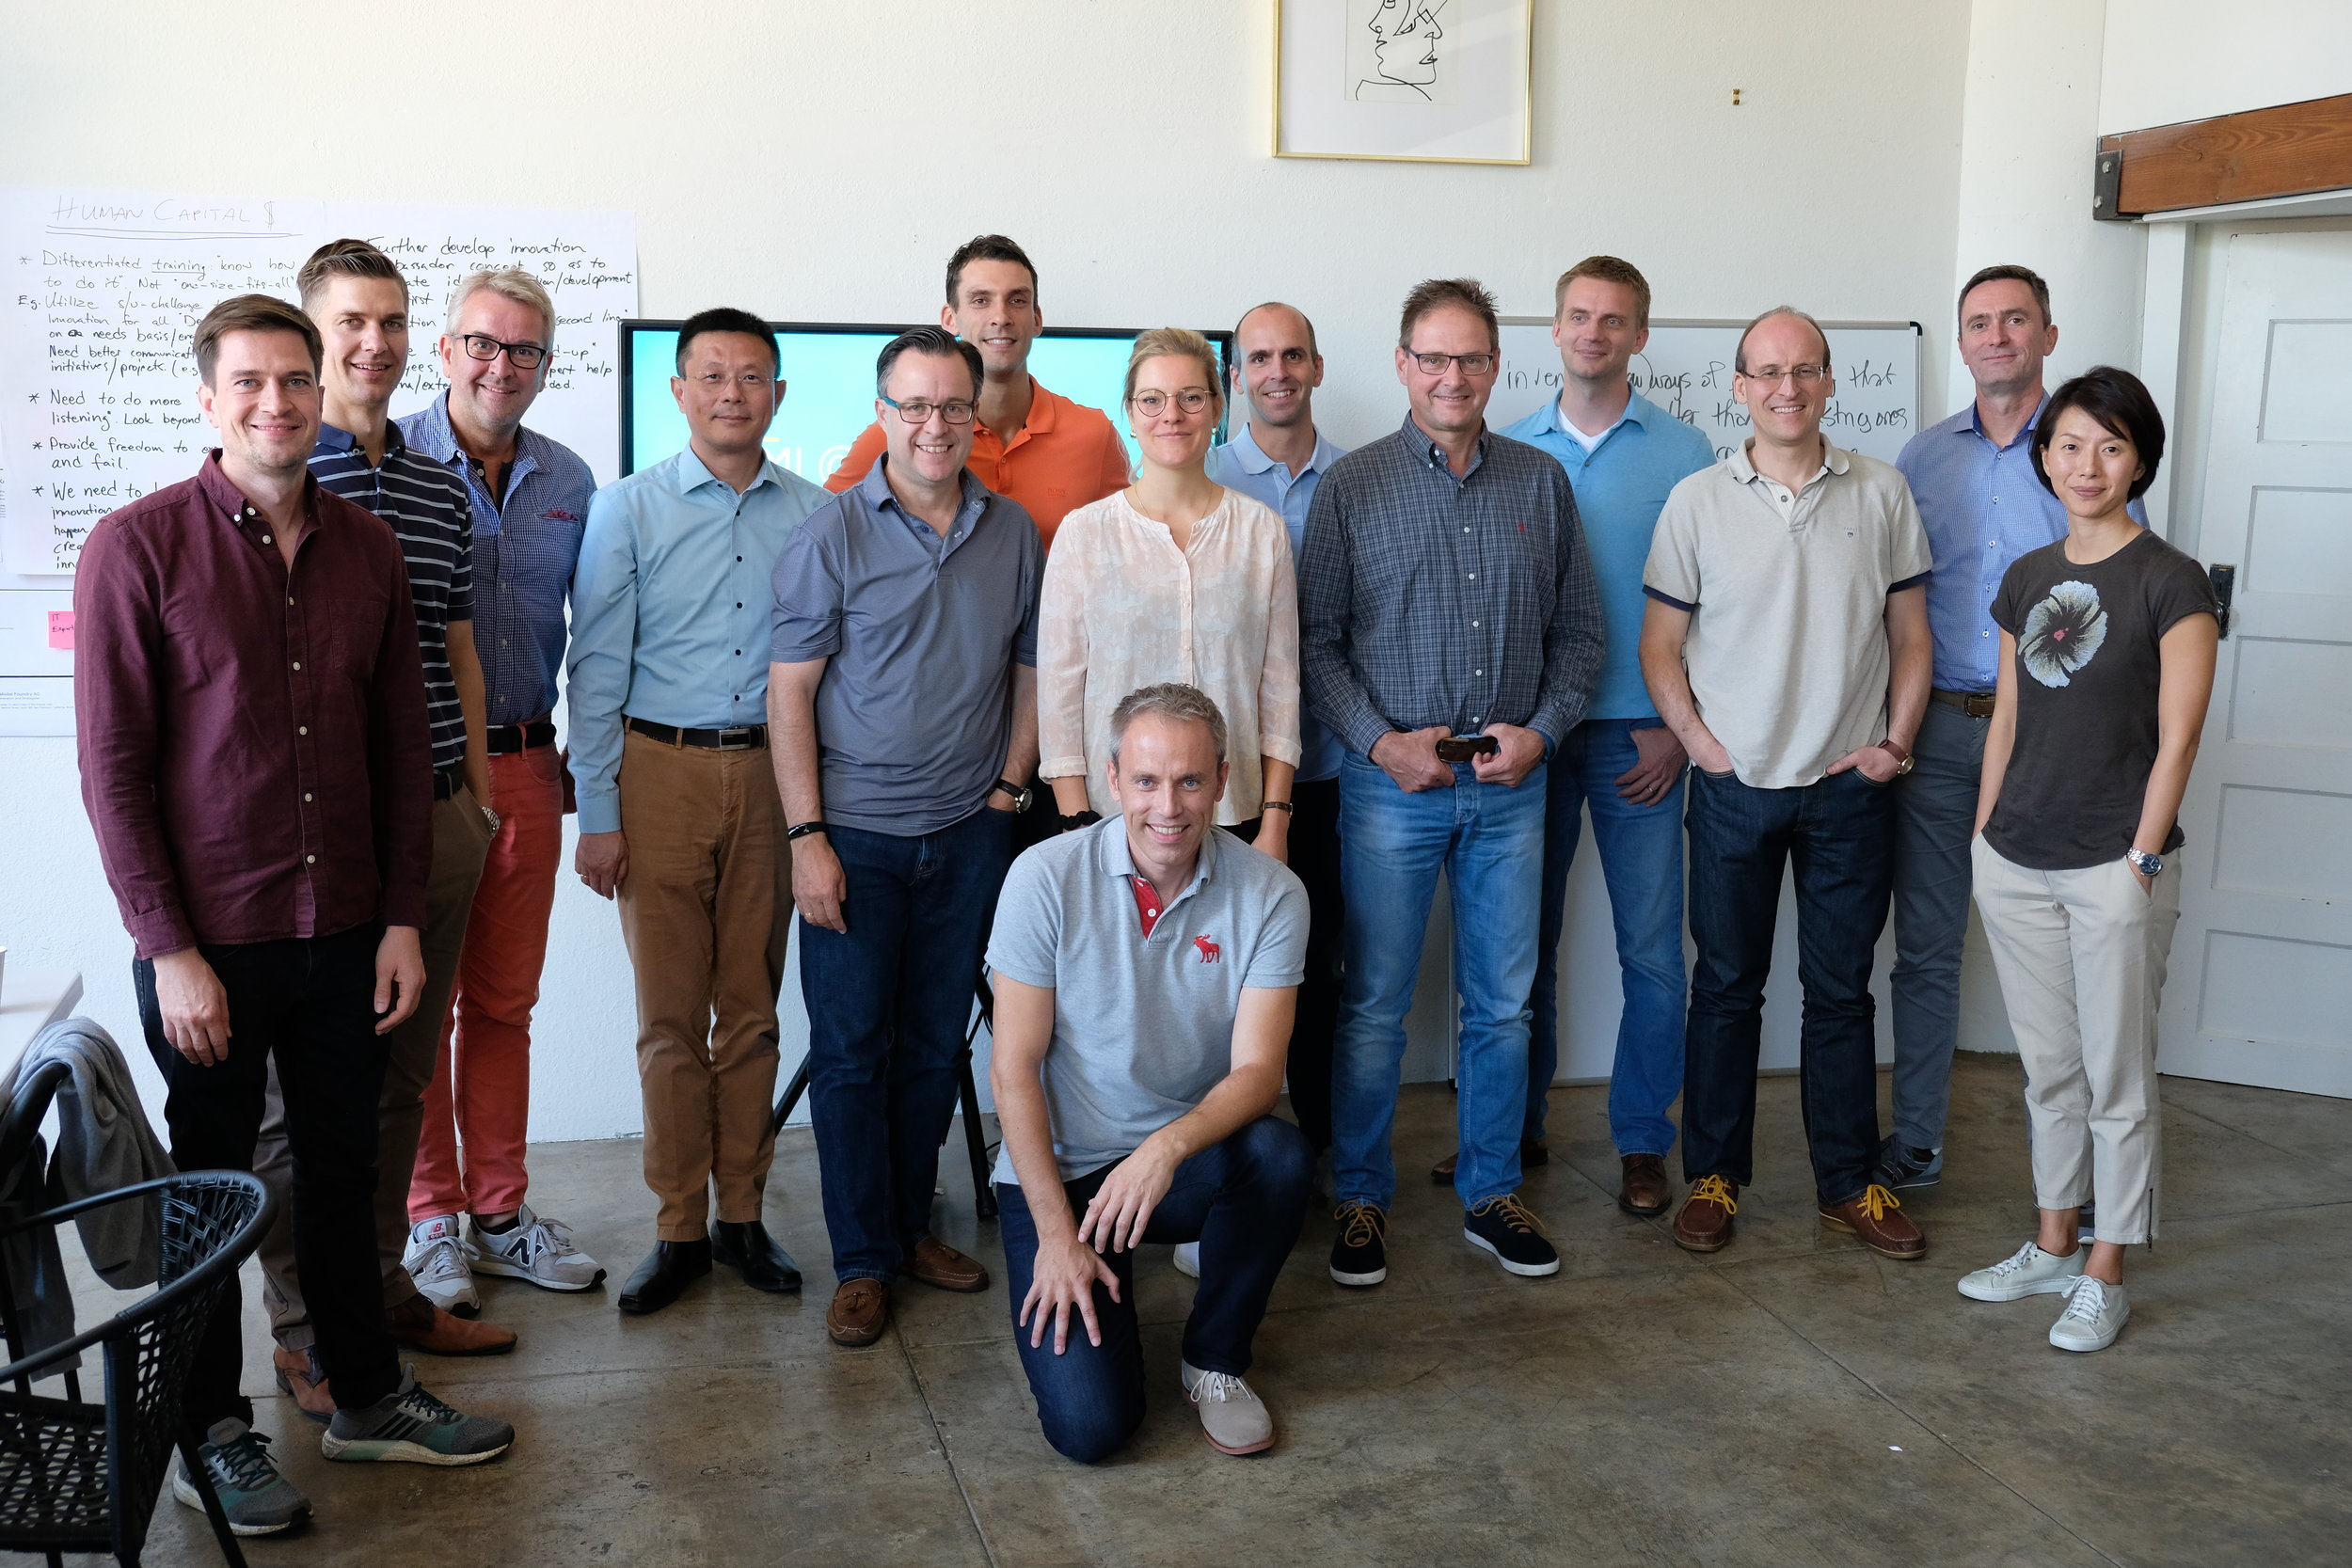 The full group after a workshop in San Francisco.